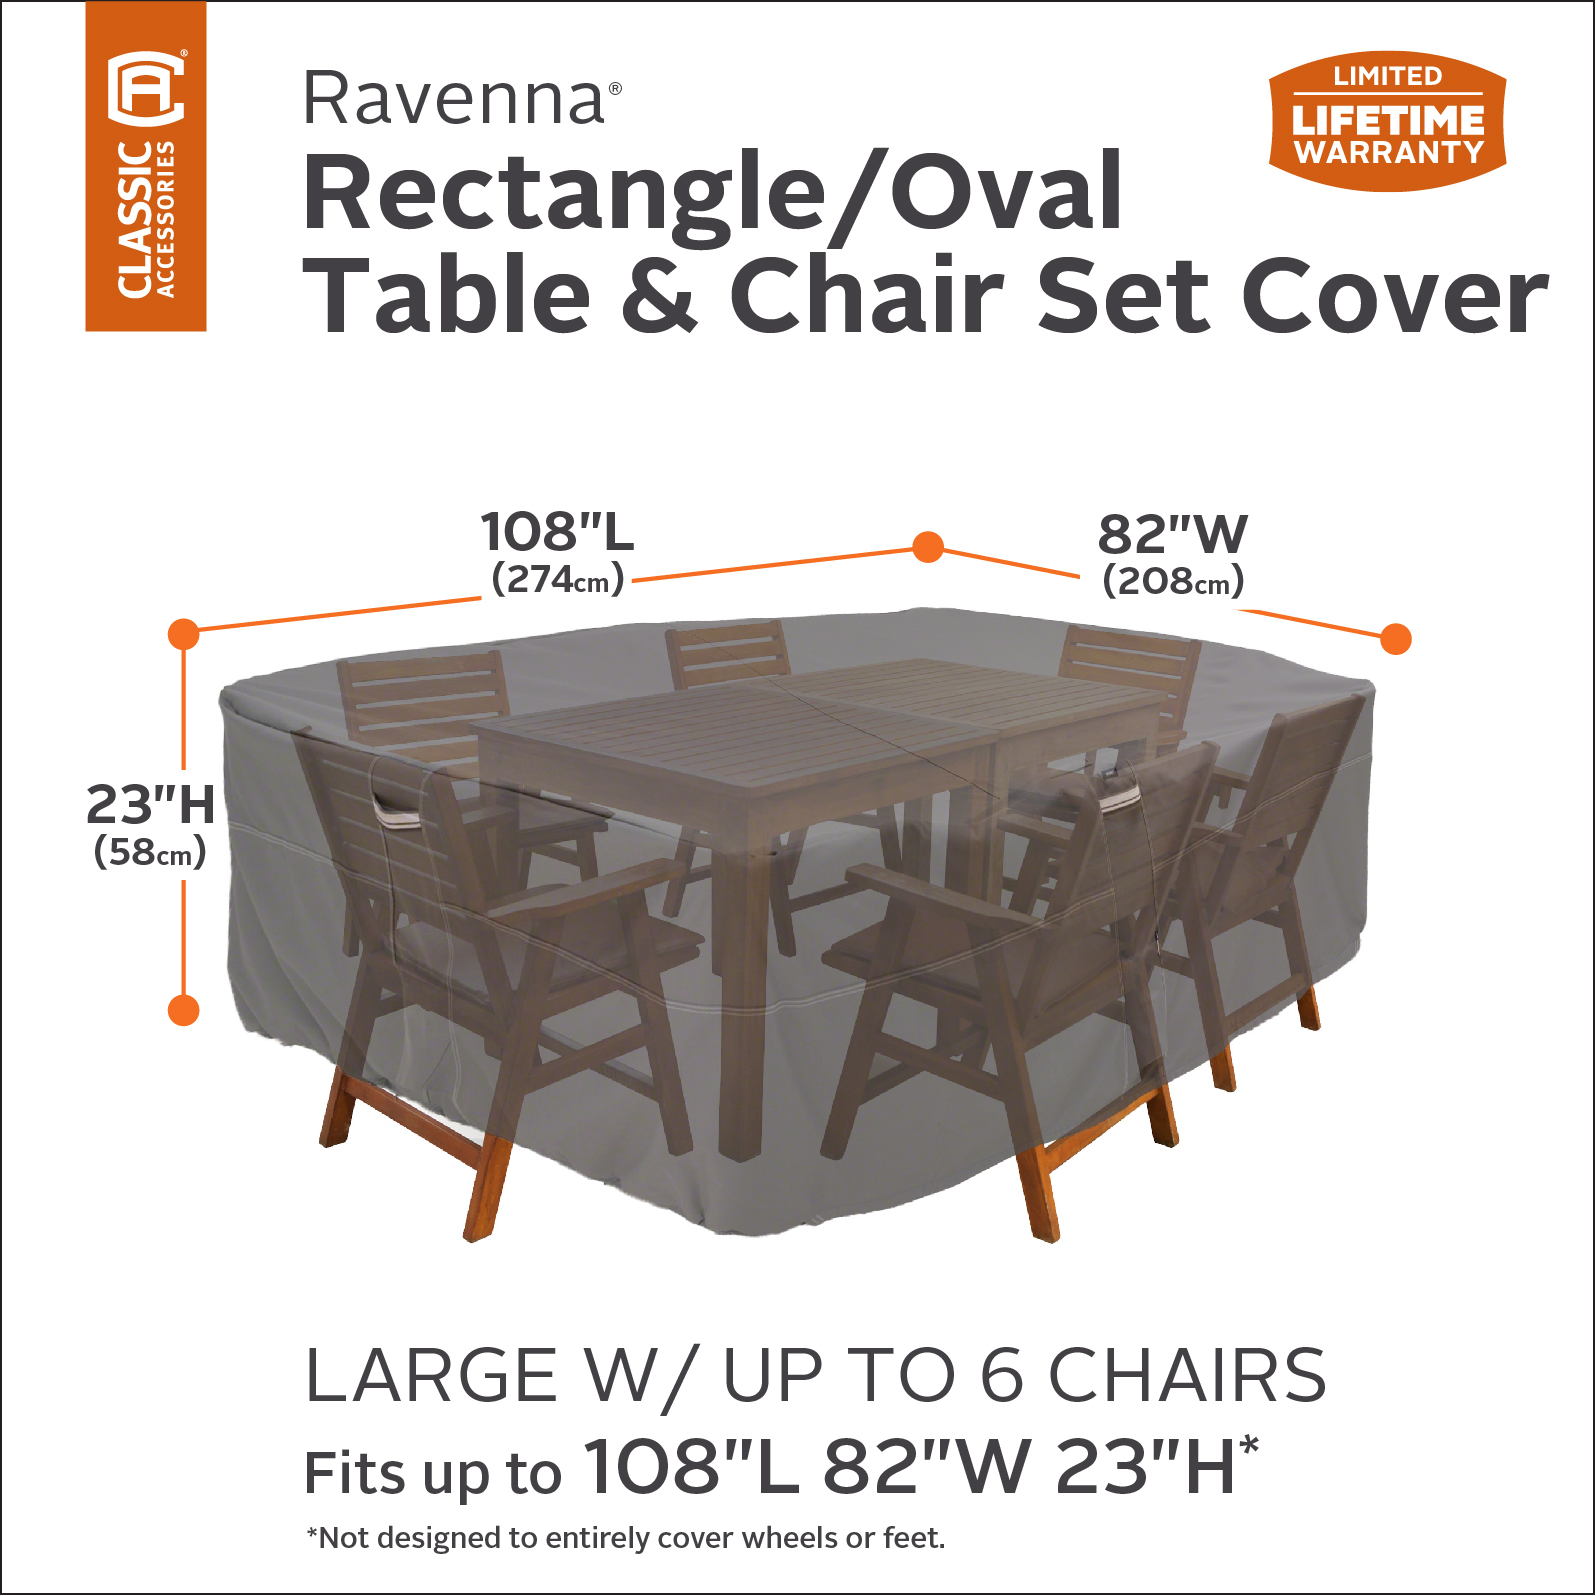 dbd0d52dcb14 Ravenna Rectangular/Oval Patio Table & Chair Set Storage Cover, Fits Sets  108